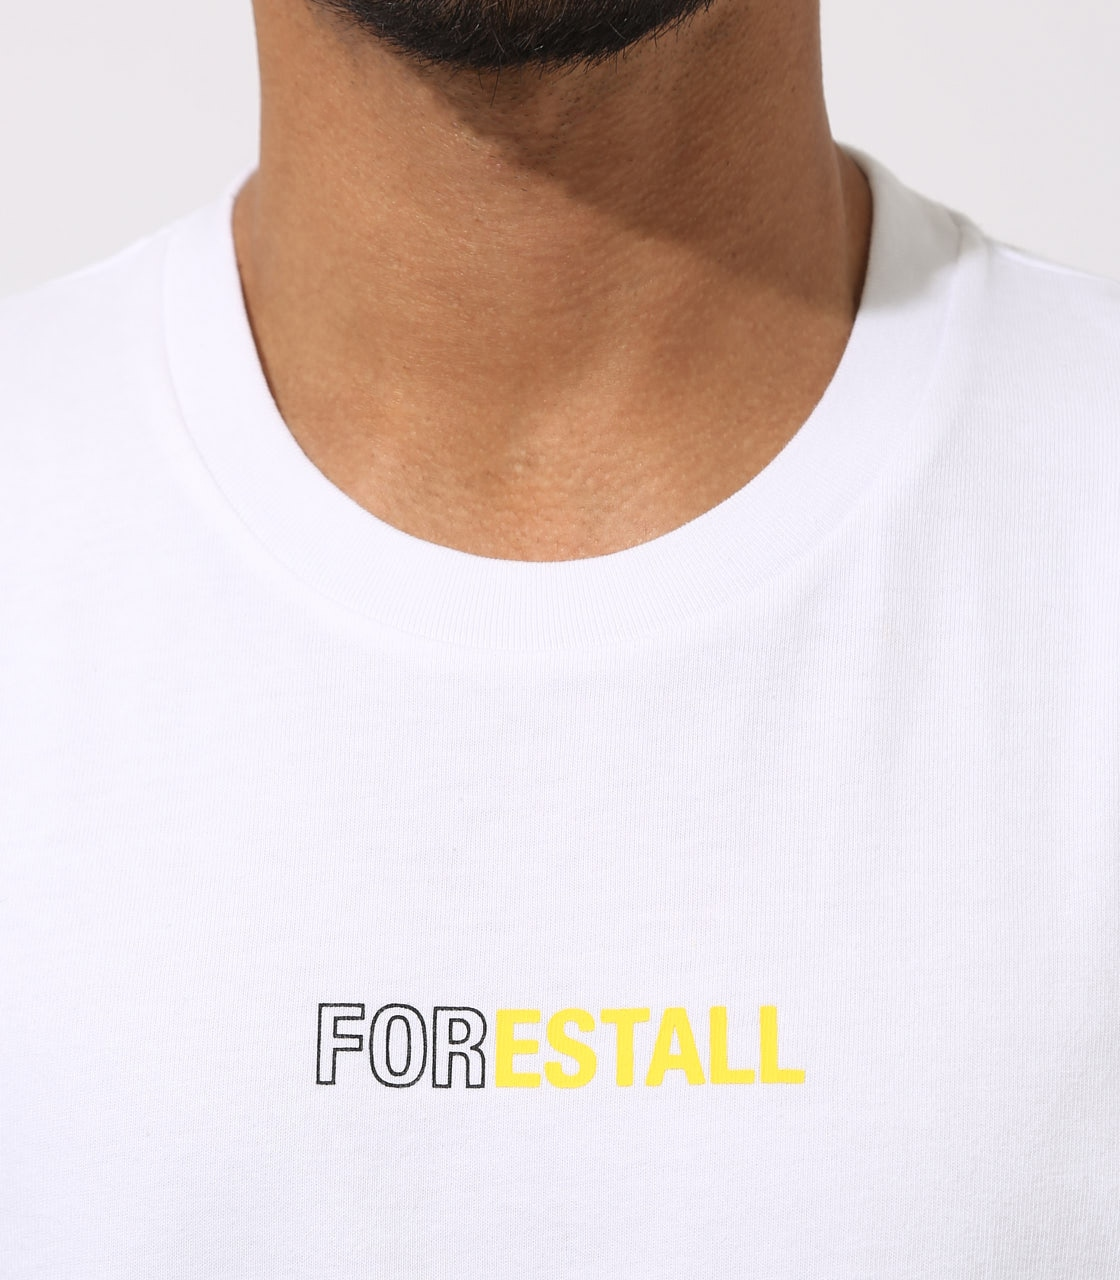 FORESTAILL PRINT TEE 詳細画像 WHT 7